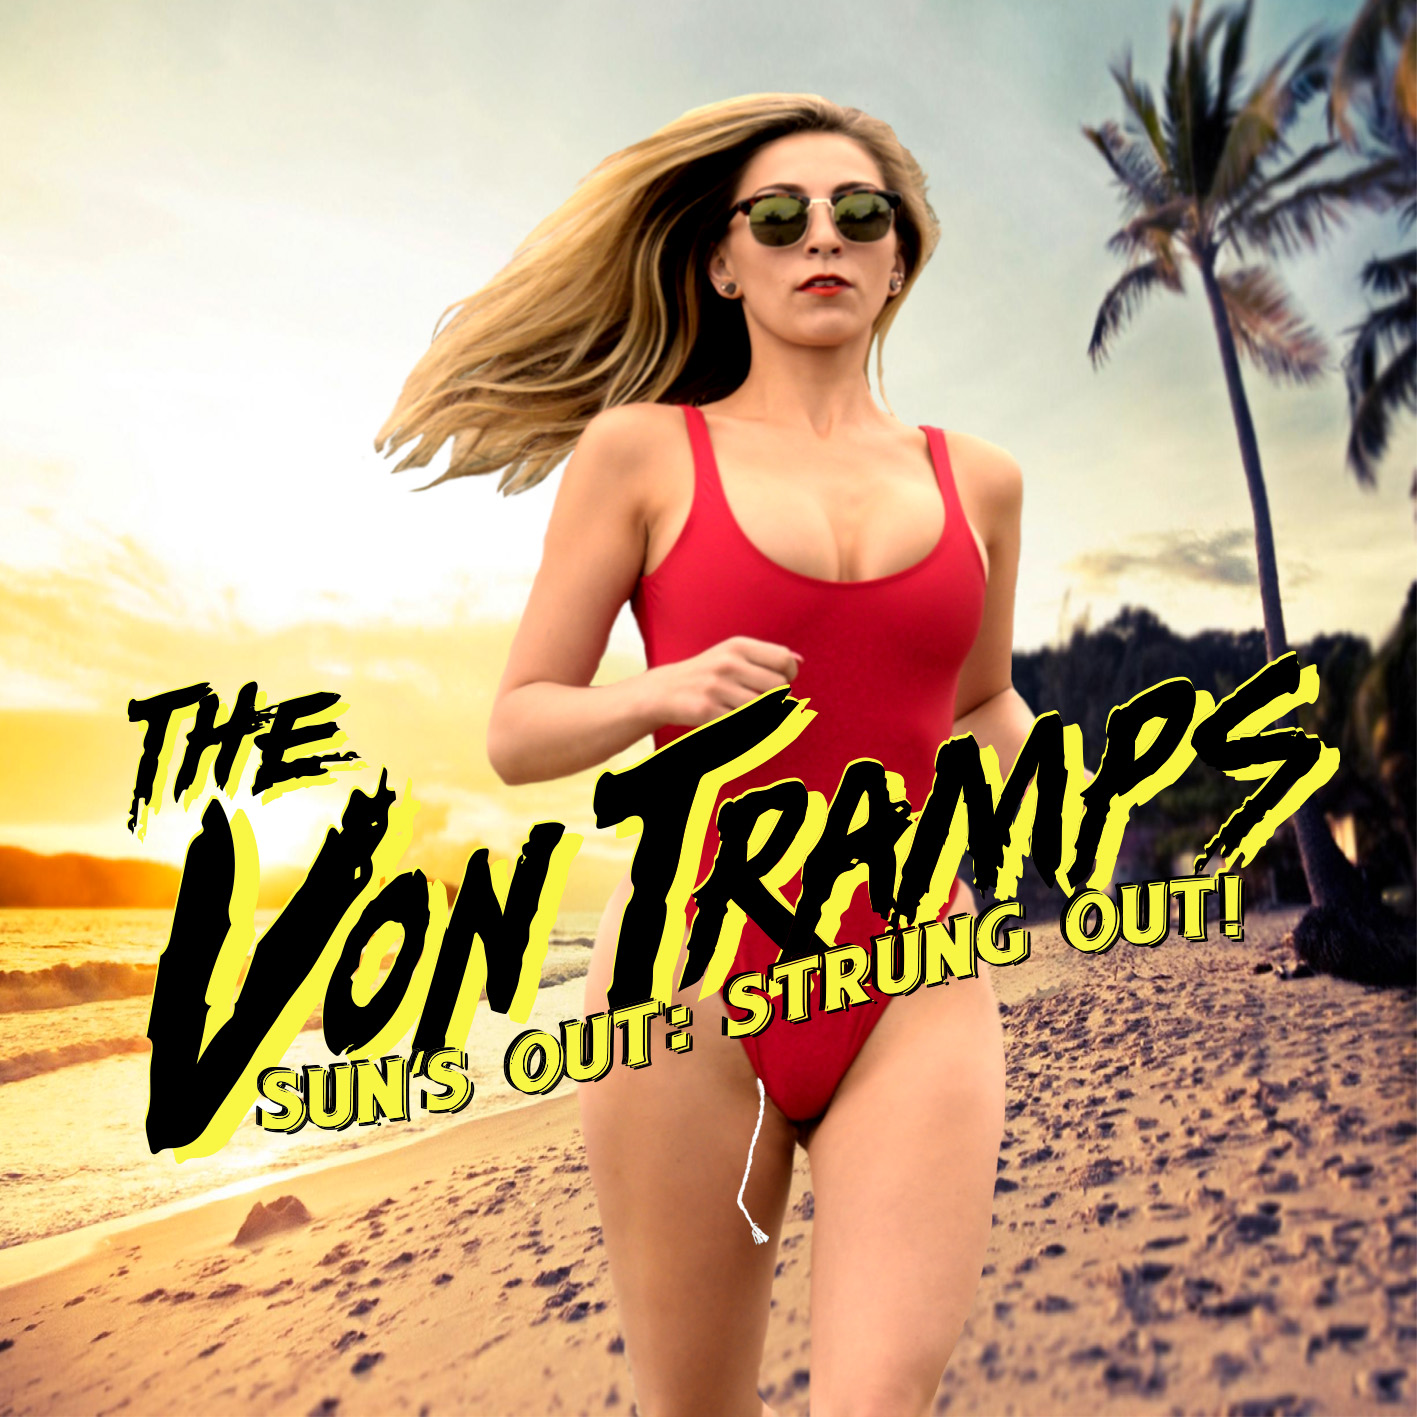 """Album cover for The Von Tramps' """"Sun's Out, Strung Out!"""""""